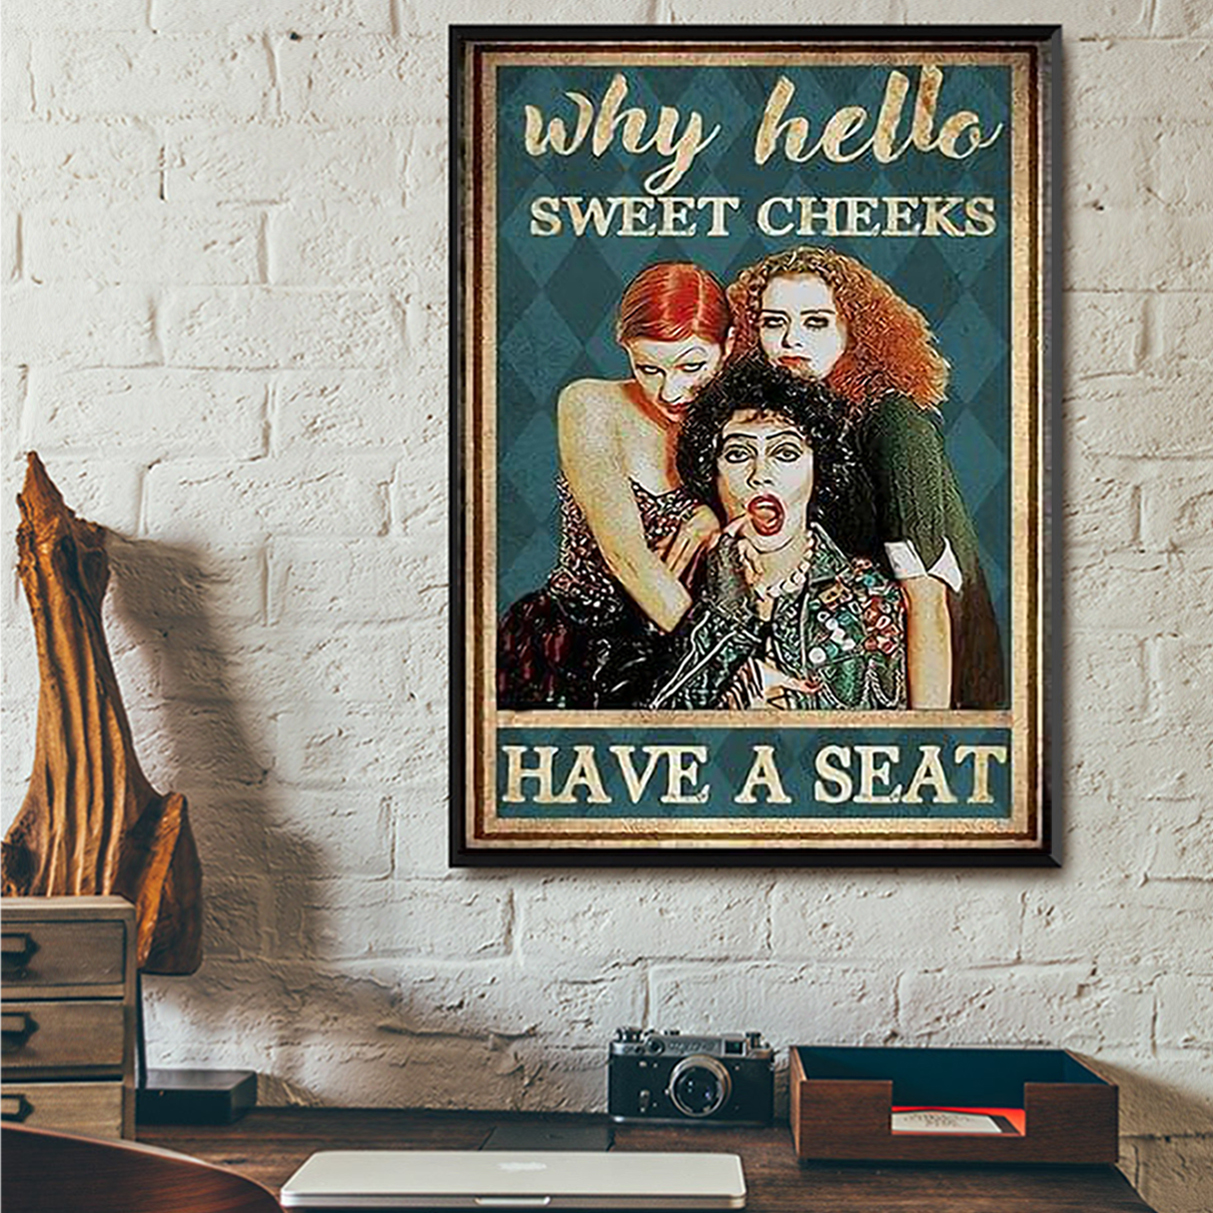 Hocus pocus why hello sweet cheeks have a seat poster A2